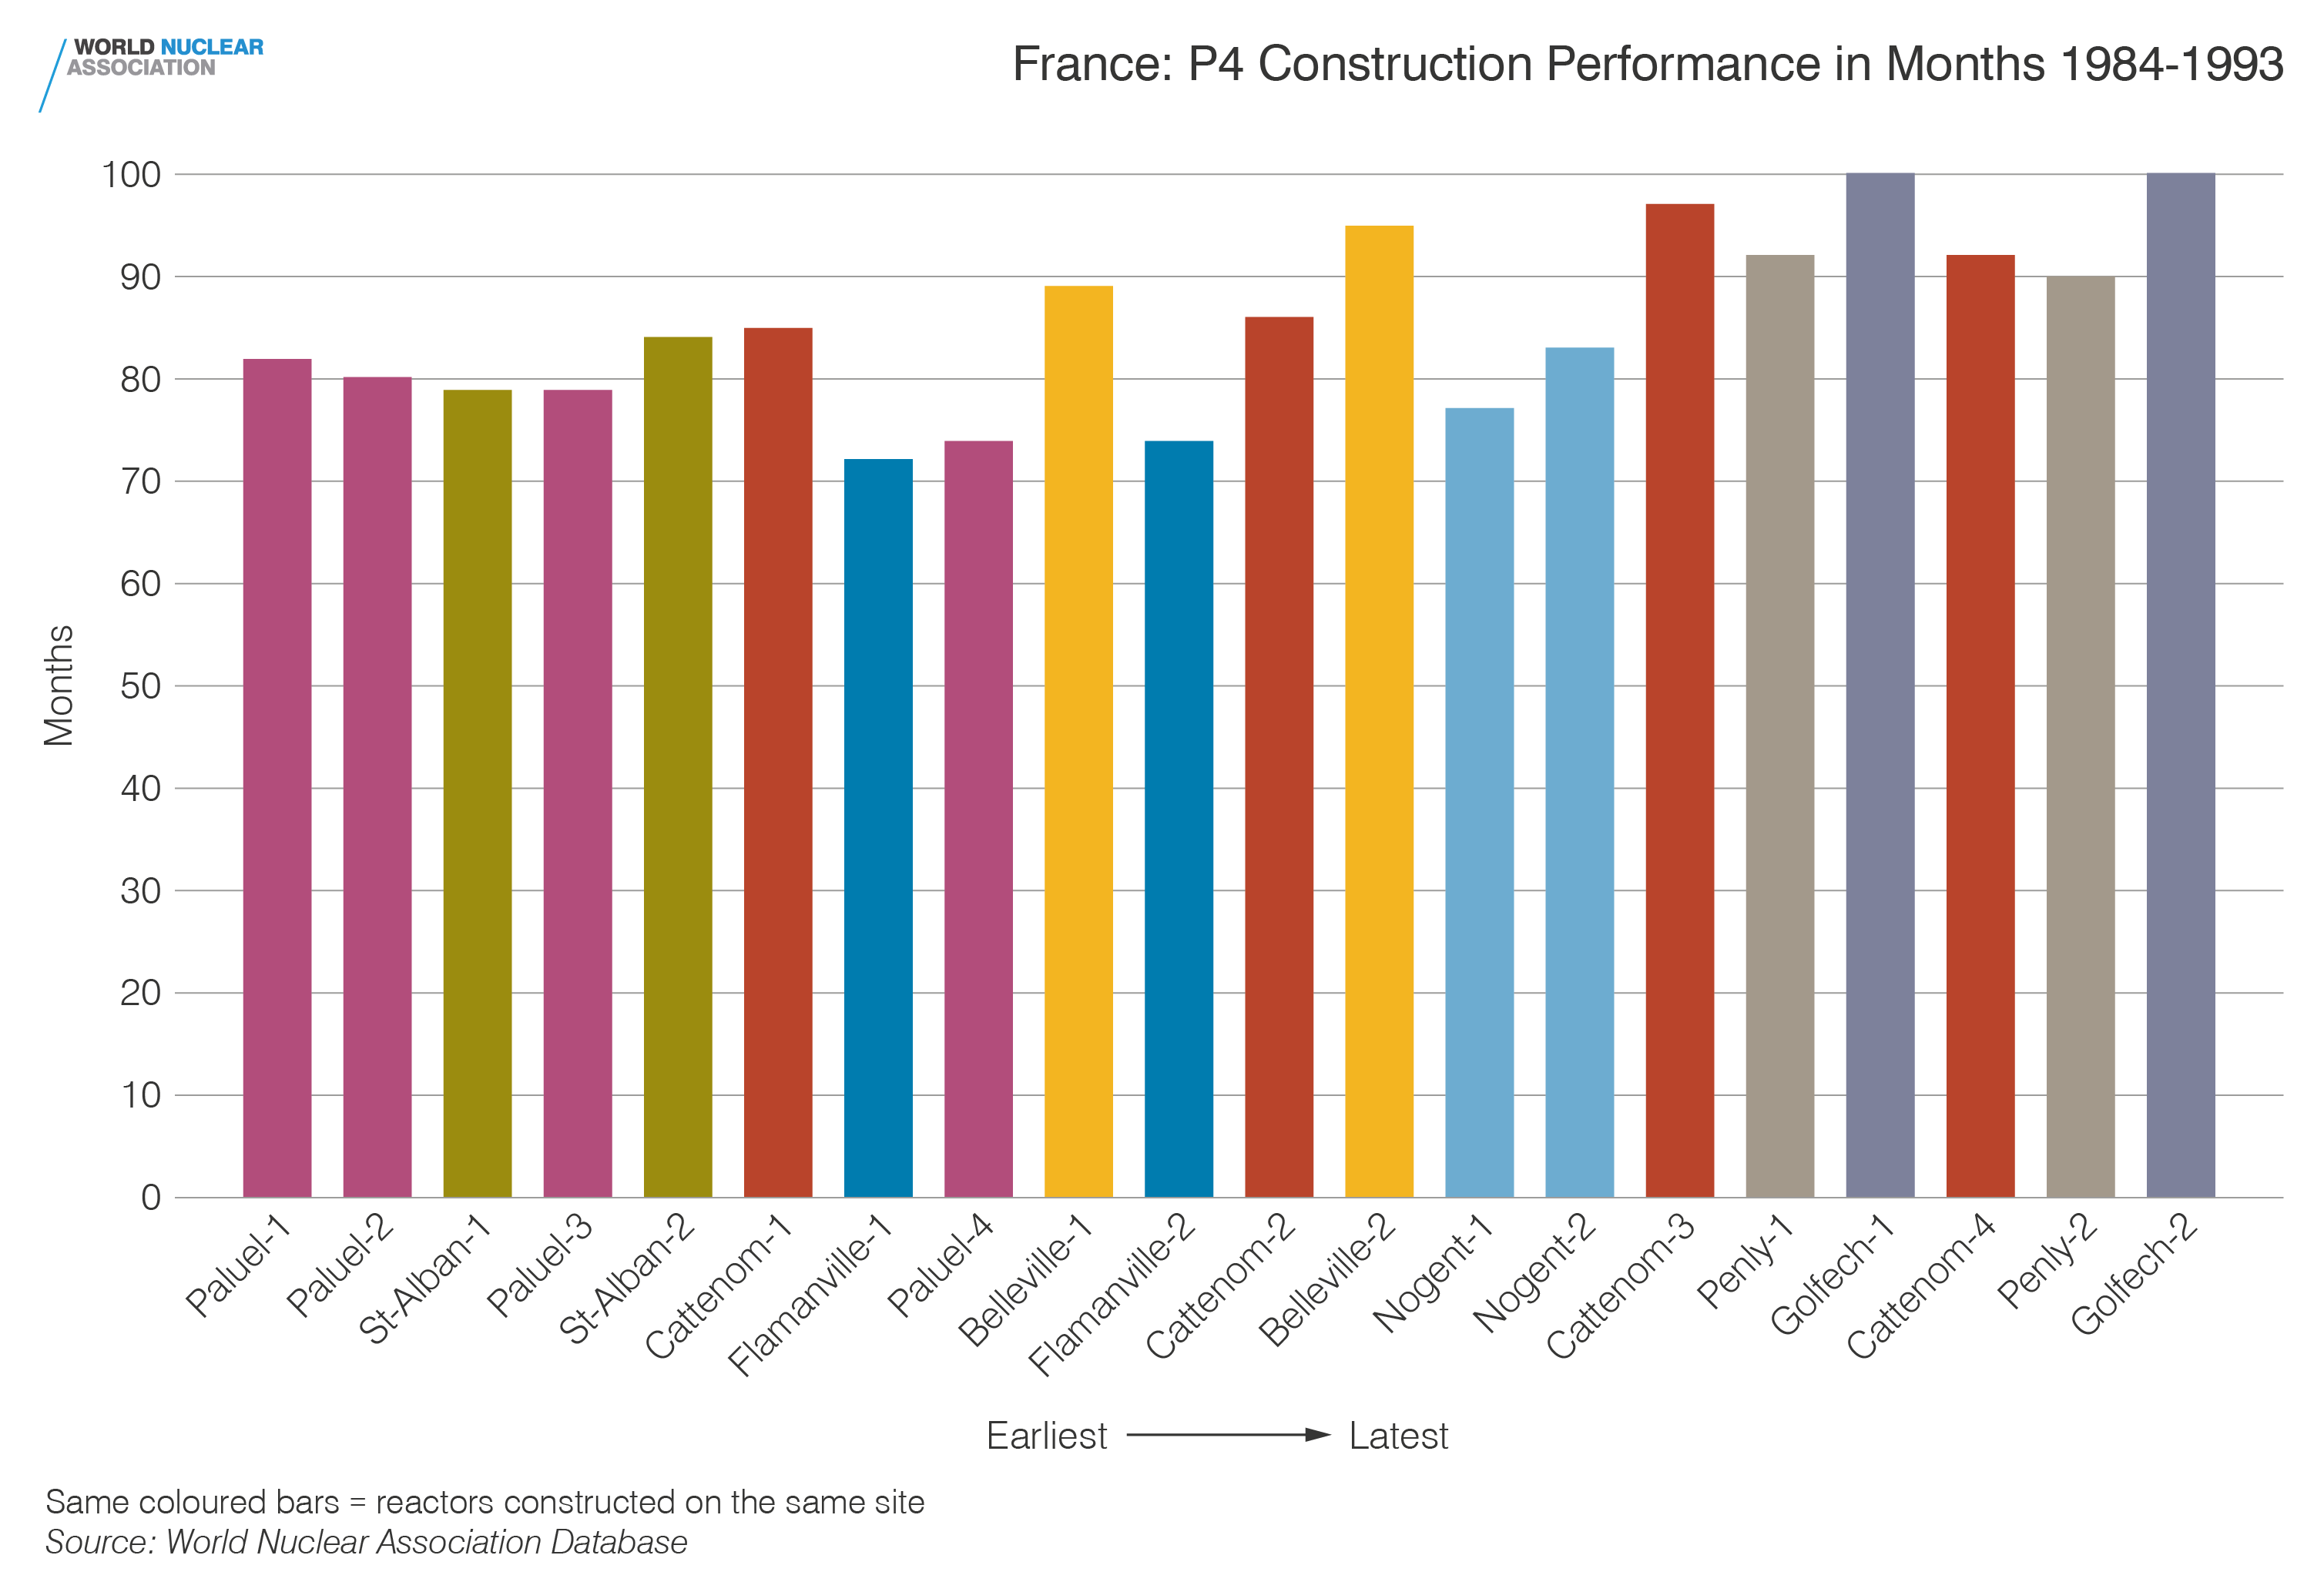 France: P4 construction performance in months 1984-1993